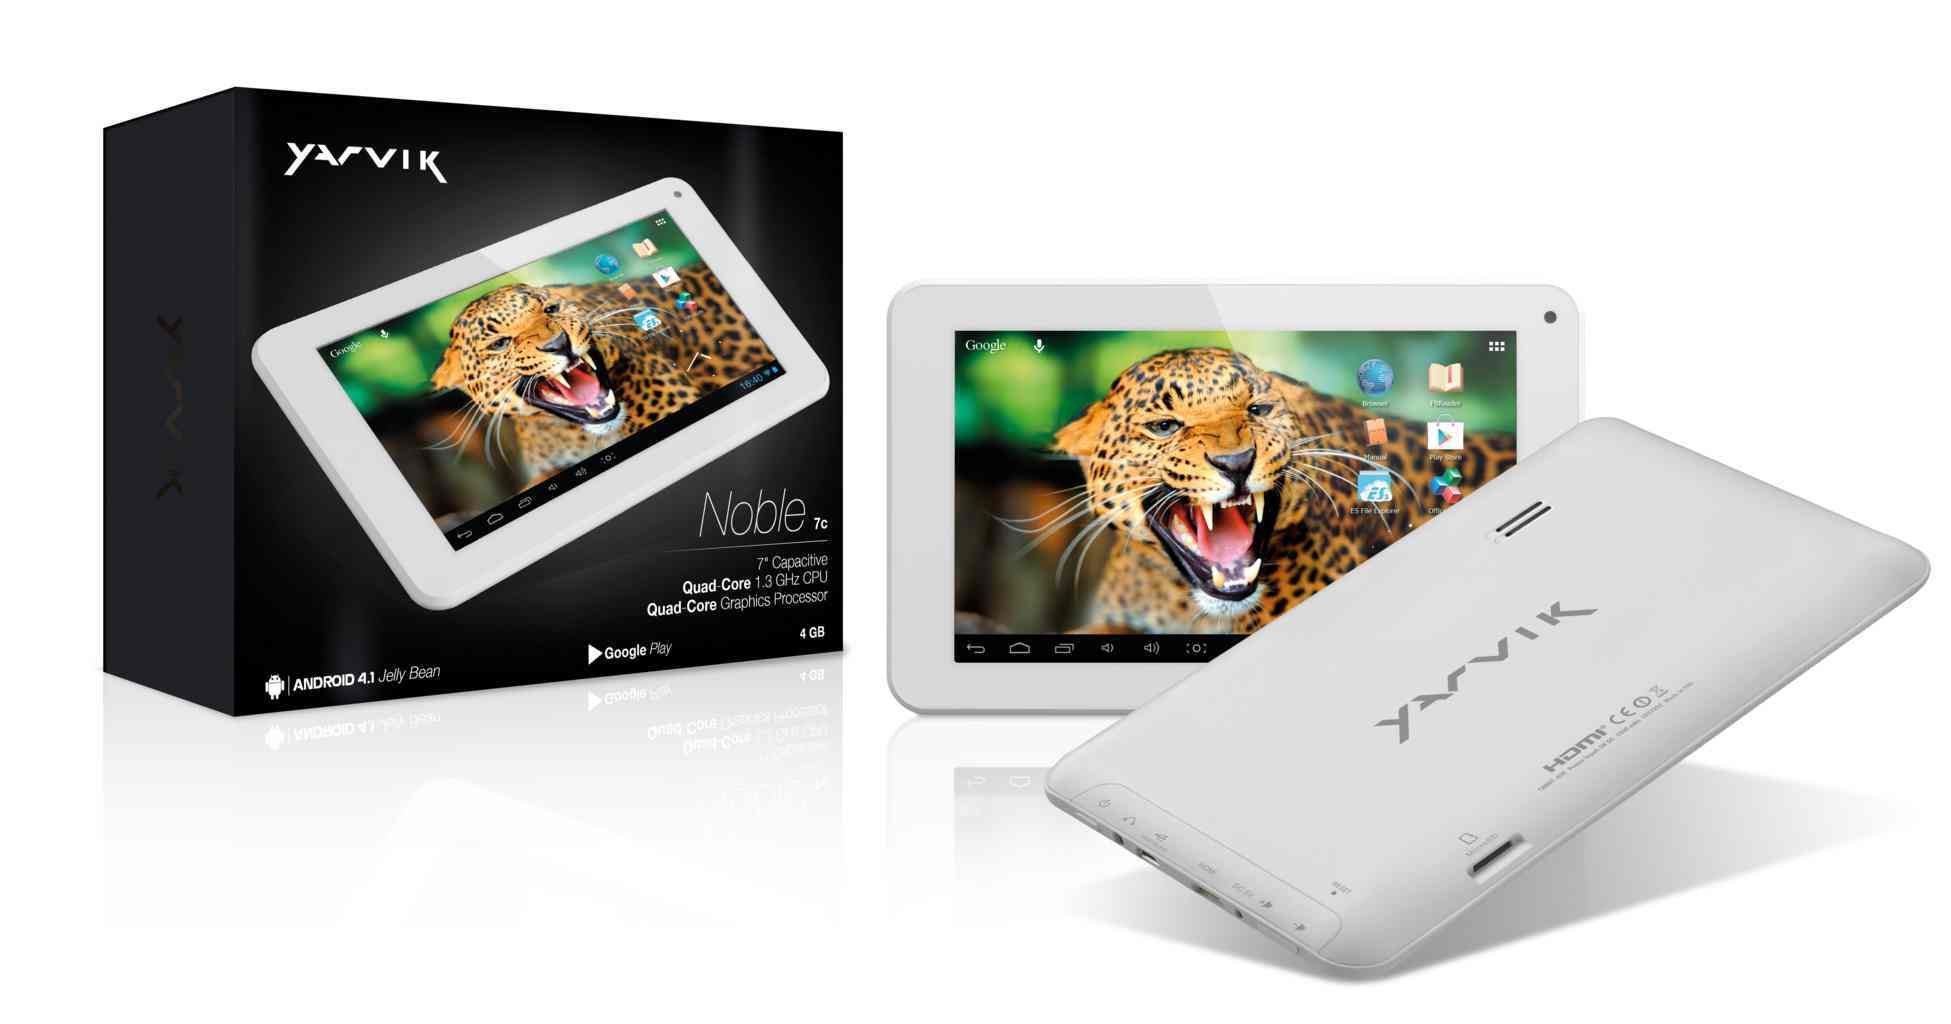 Tablet Pc Yarvik 7 Tab07 400